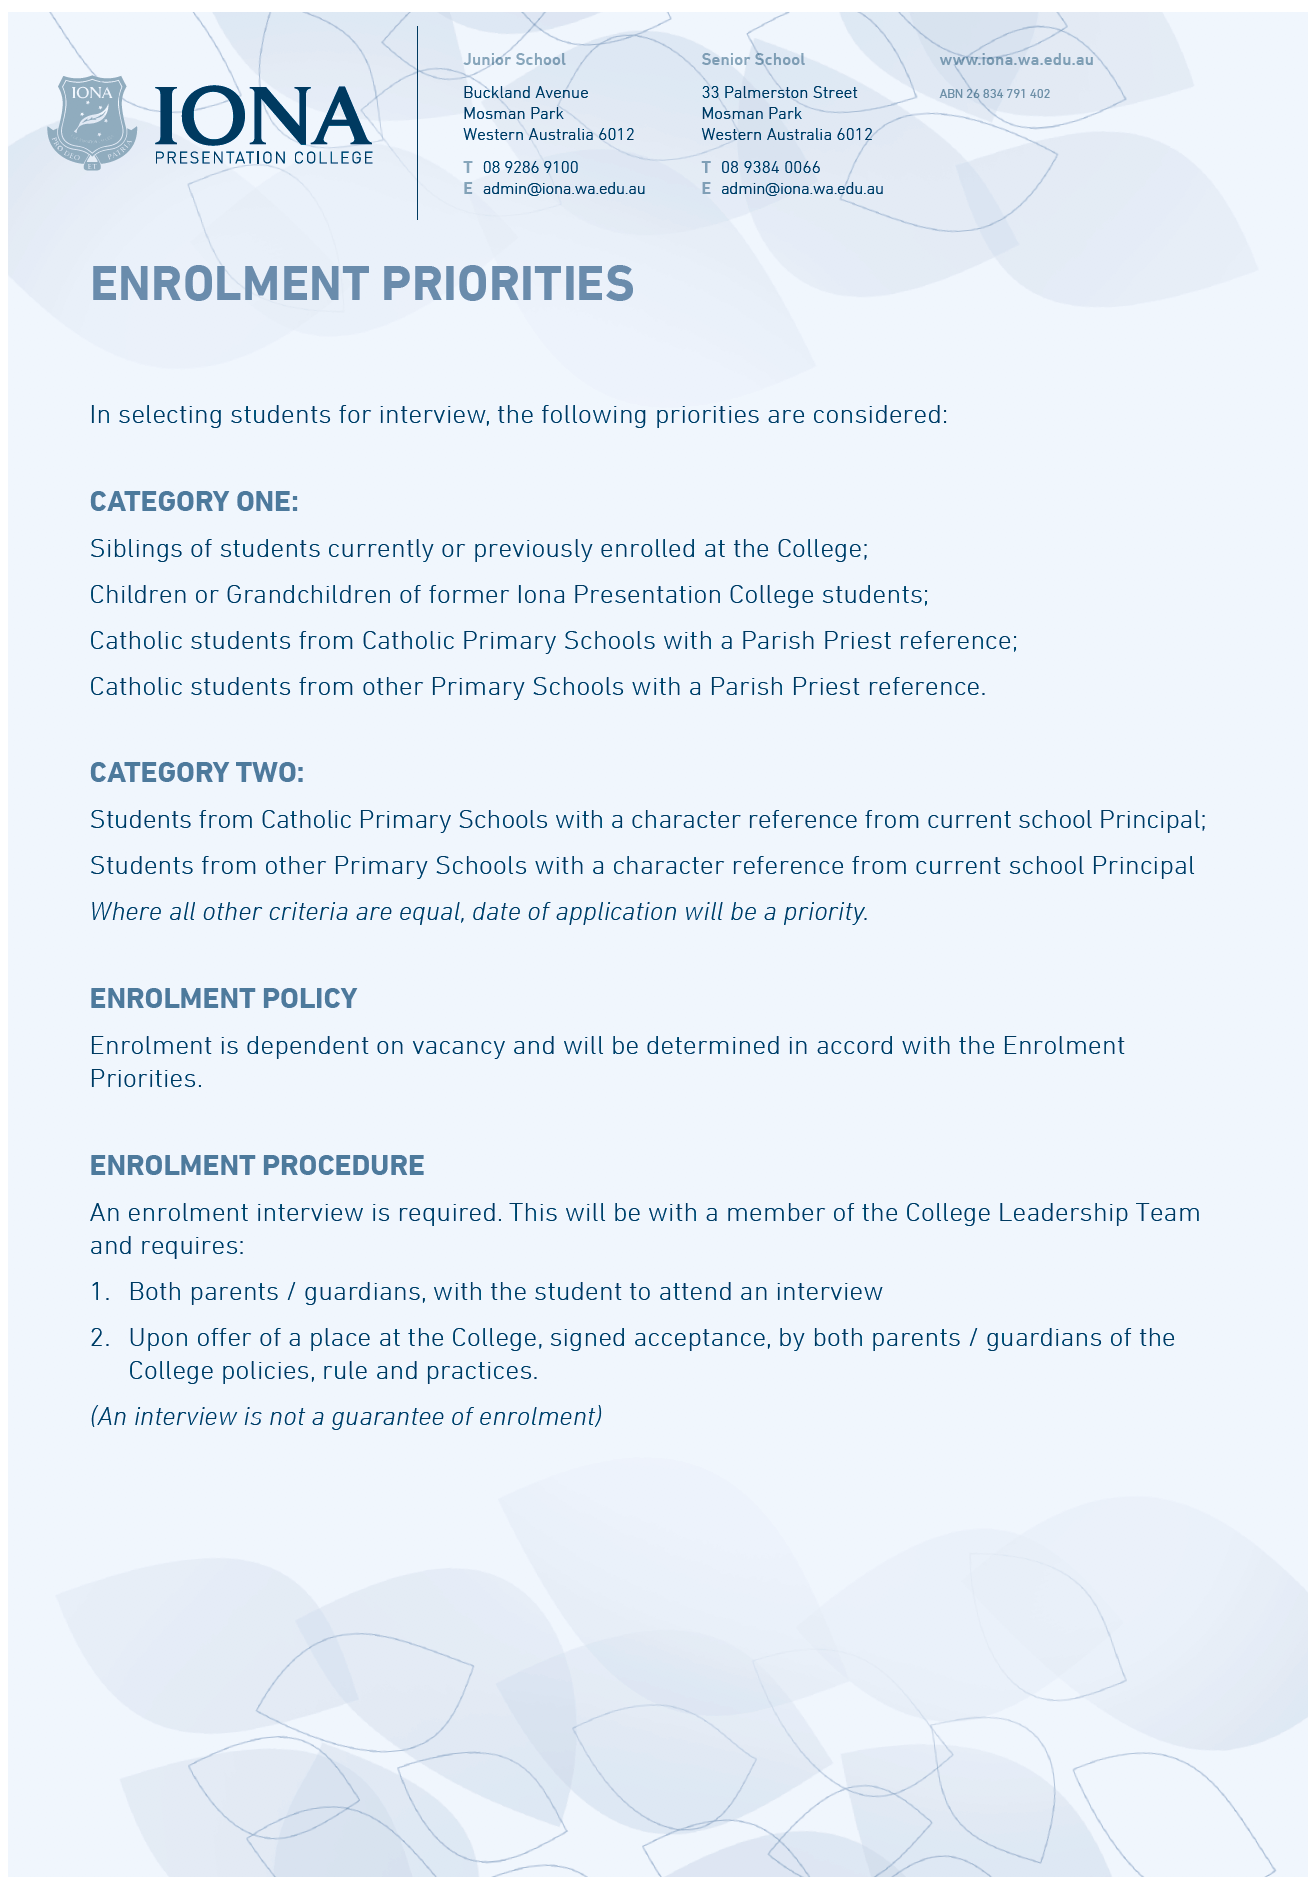 enrolment-priorities-screenshot.png